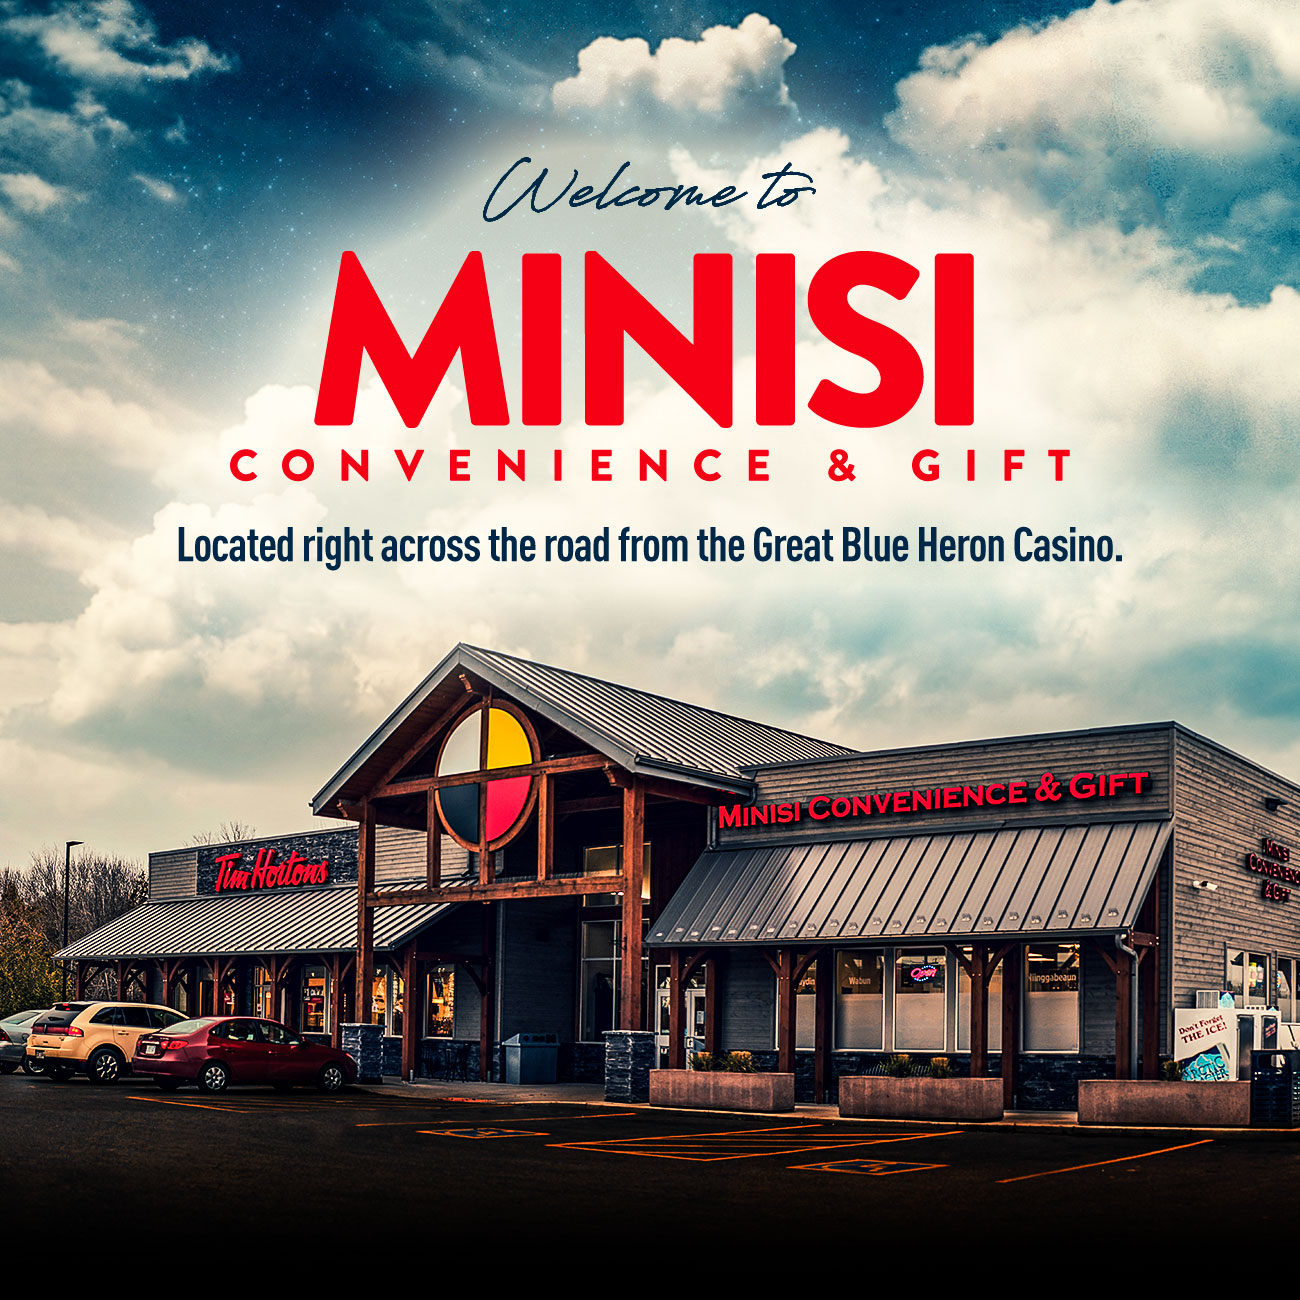 Welcome to Minisi Convenience & Gift